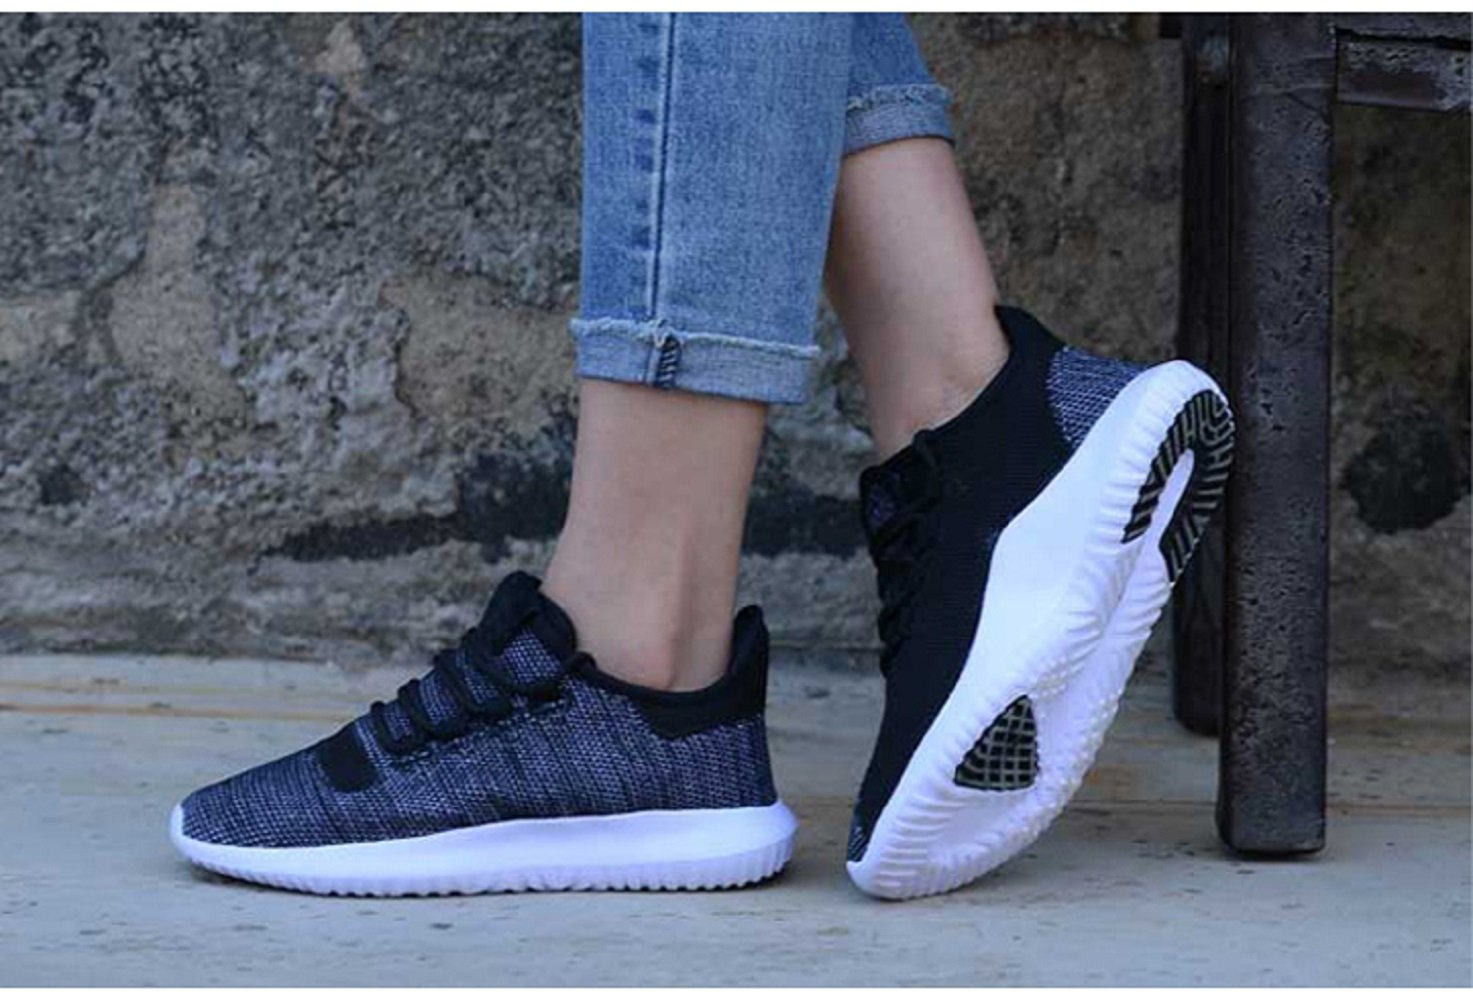 GAOAG Sneakers Running Cushioning Lightweight Breathable Casual Shoes Unisex by GAOAG (Image #7)